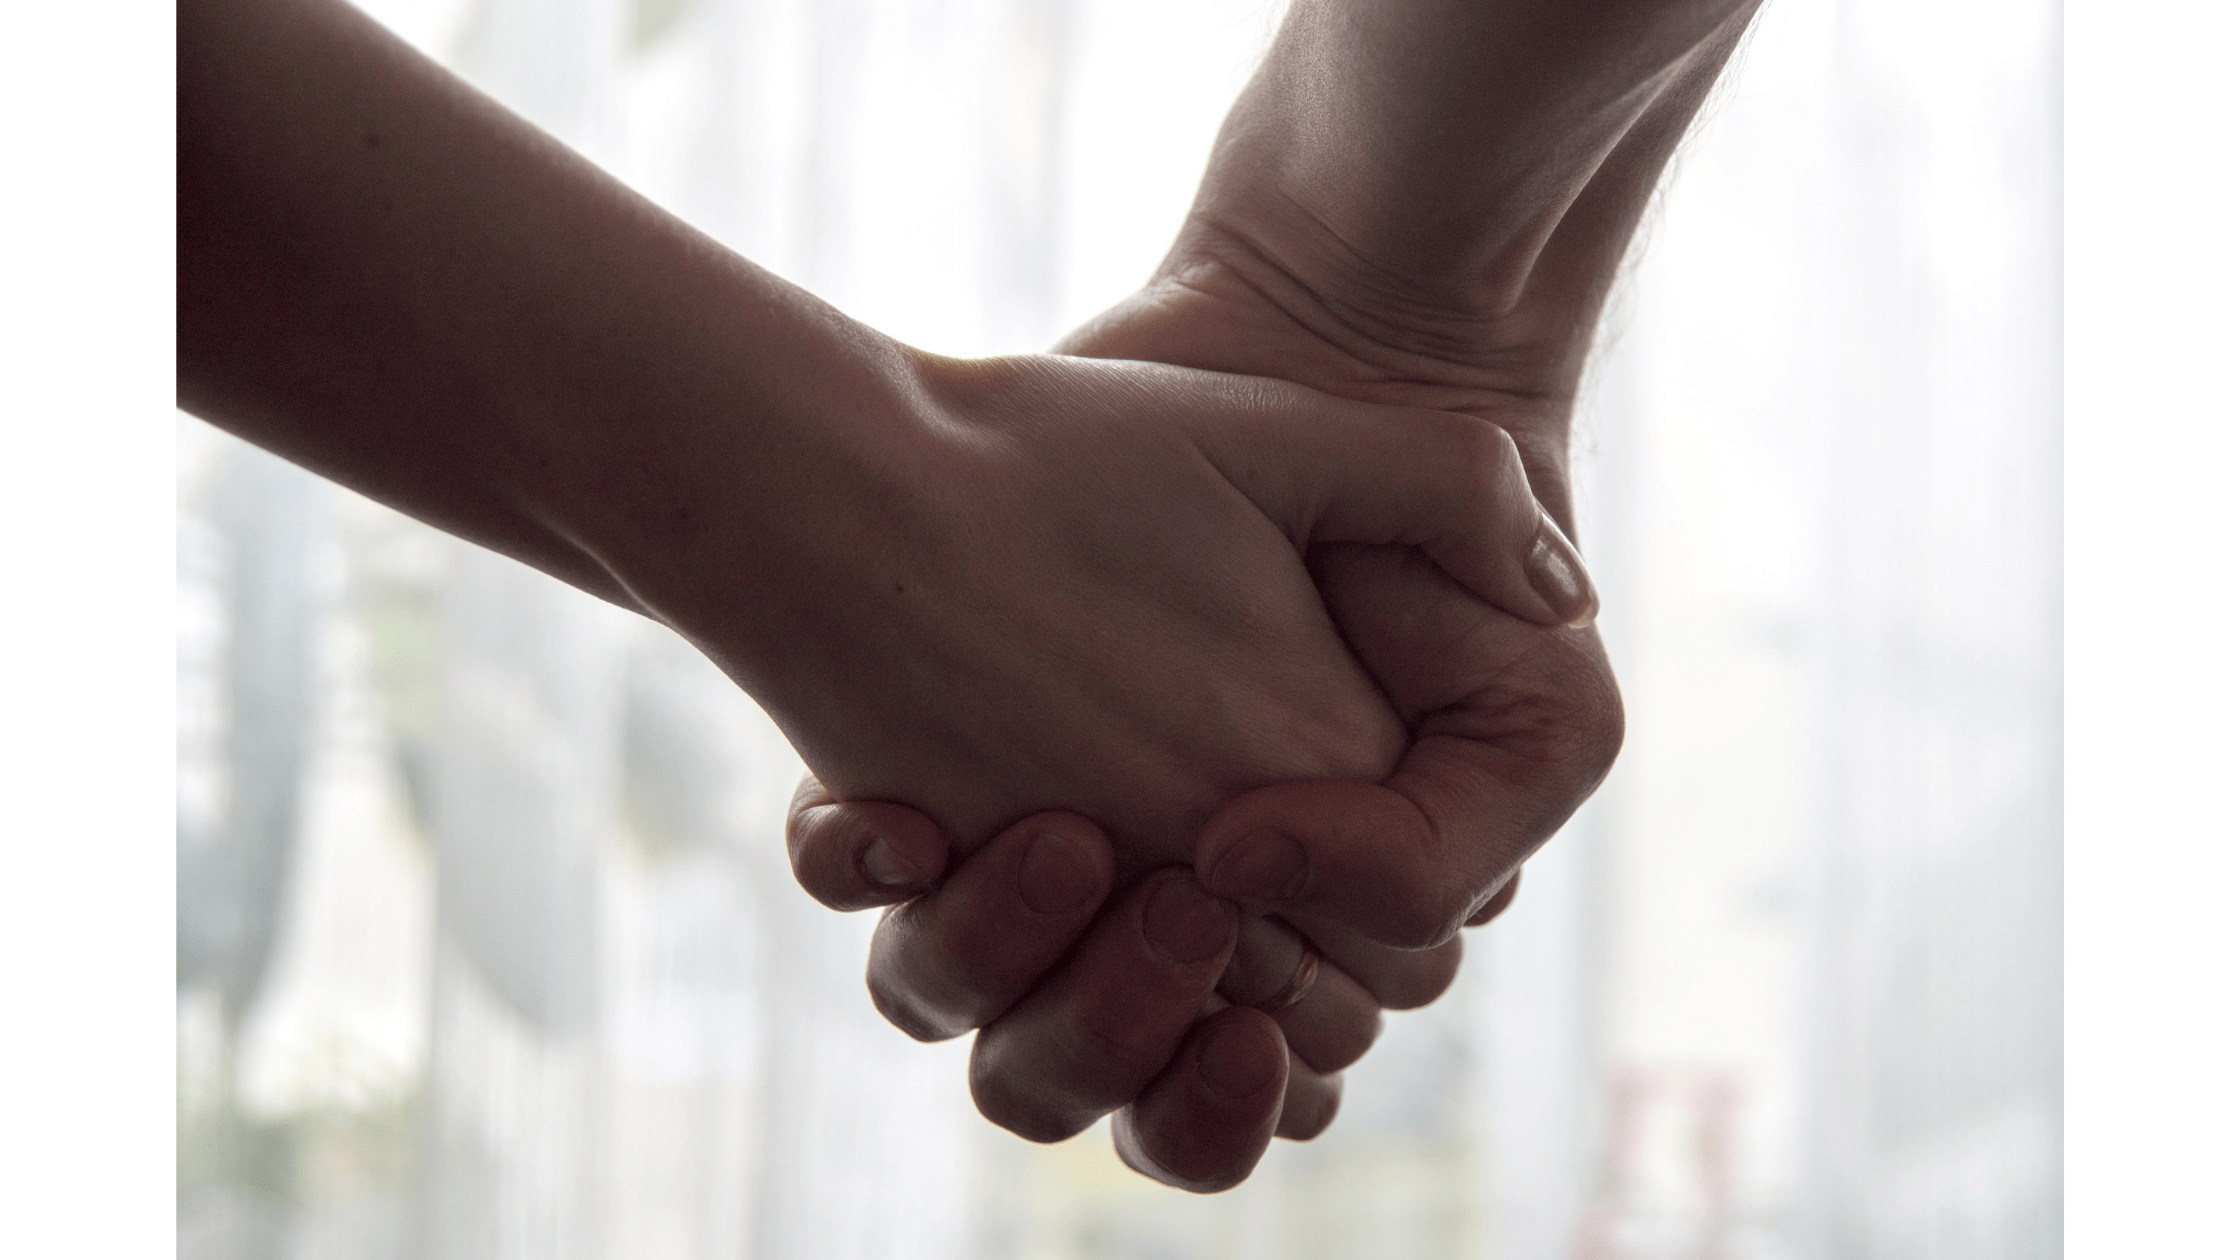 The 6 things to know when supporting someone who suffers from depression